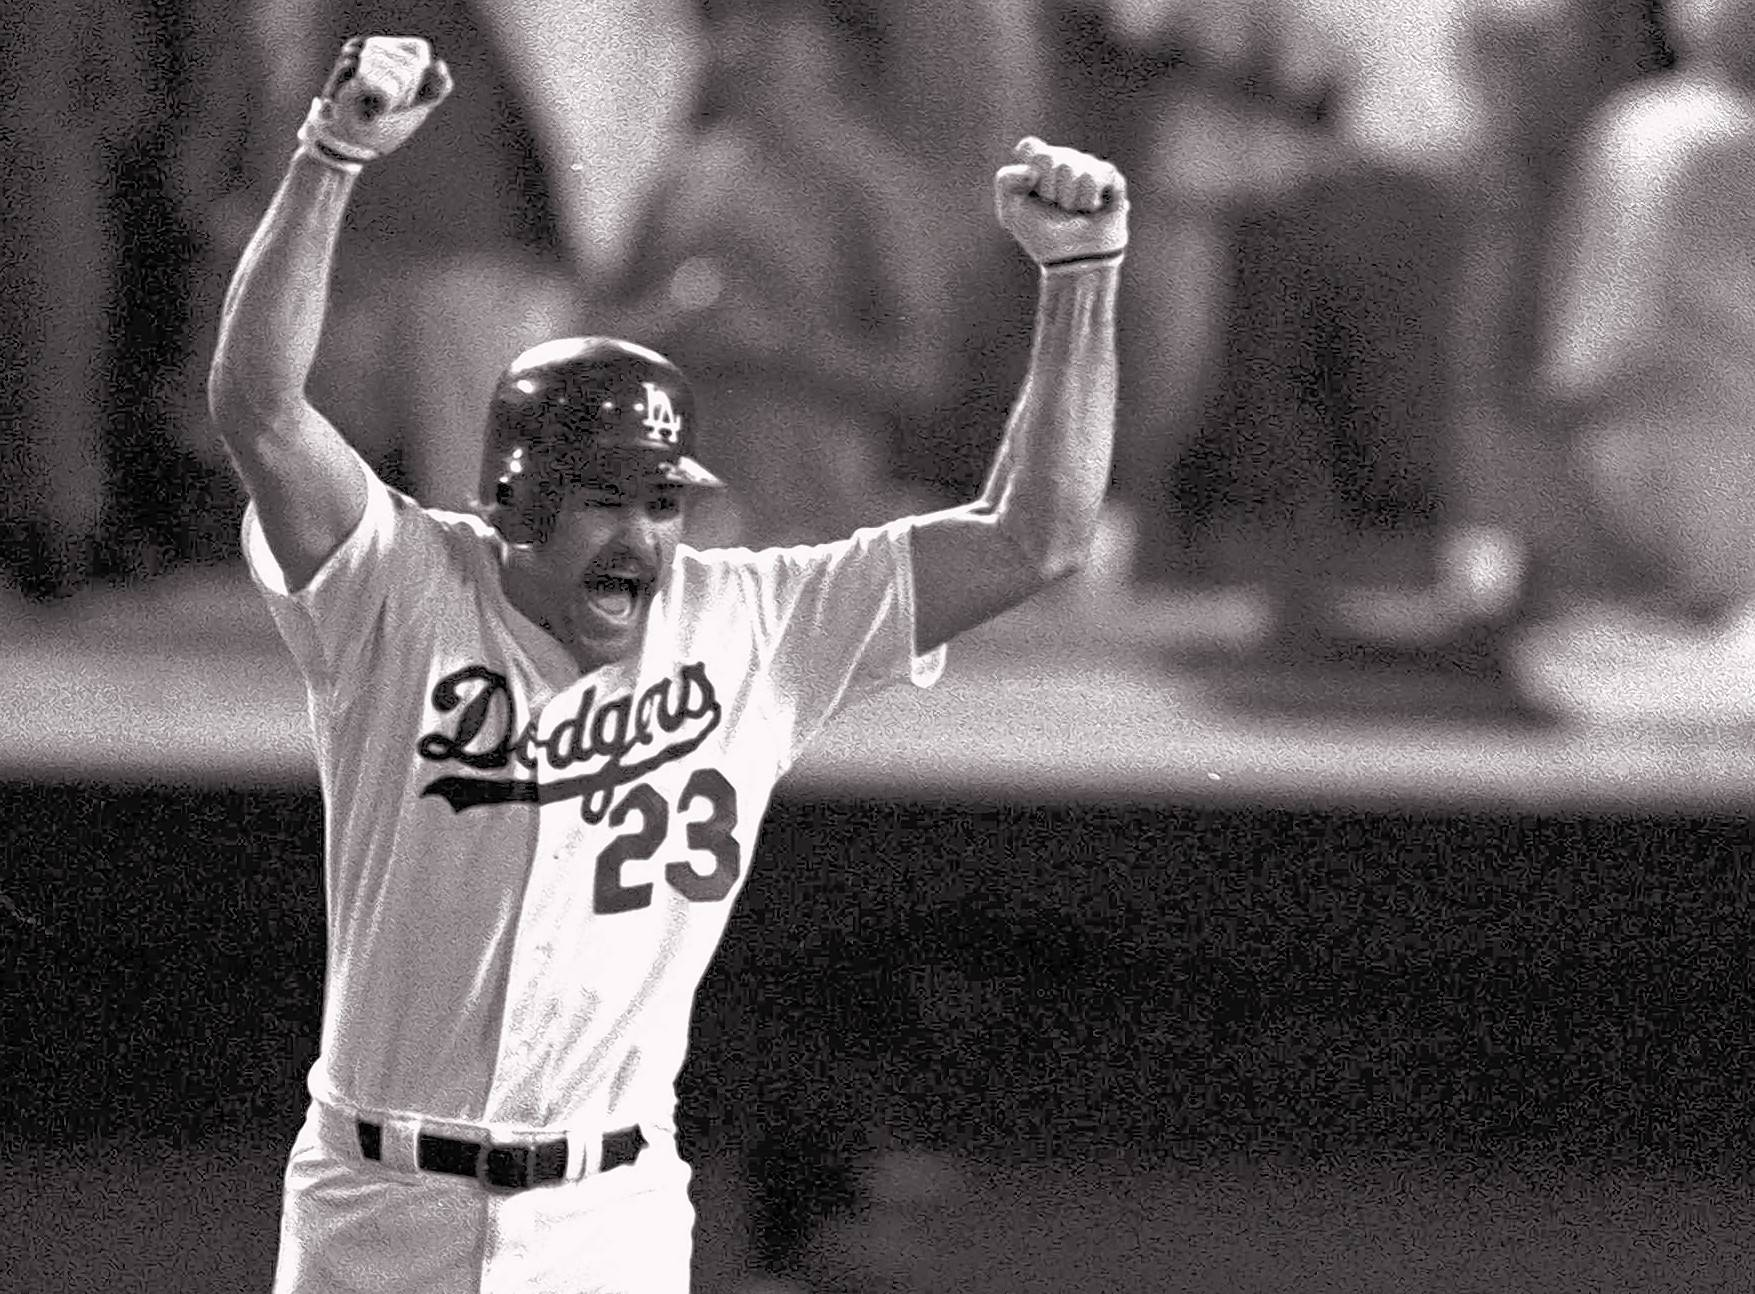 Vin Scully called the game when Los Angeles Dodgers' Kirk Gibson came off the bench and hit his game-winning two-run home run in the bottom of the ninth inning at Dodger Stadium to give Los Angeles a 5-4 win over the Oakland A's in the first game of the 1988 World Series.